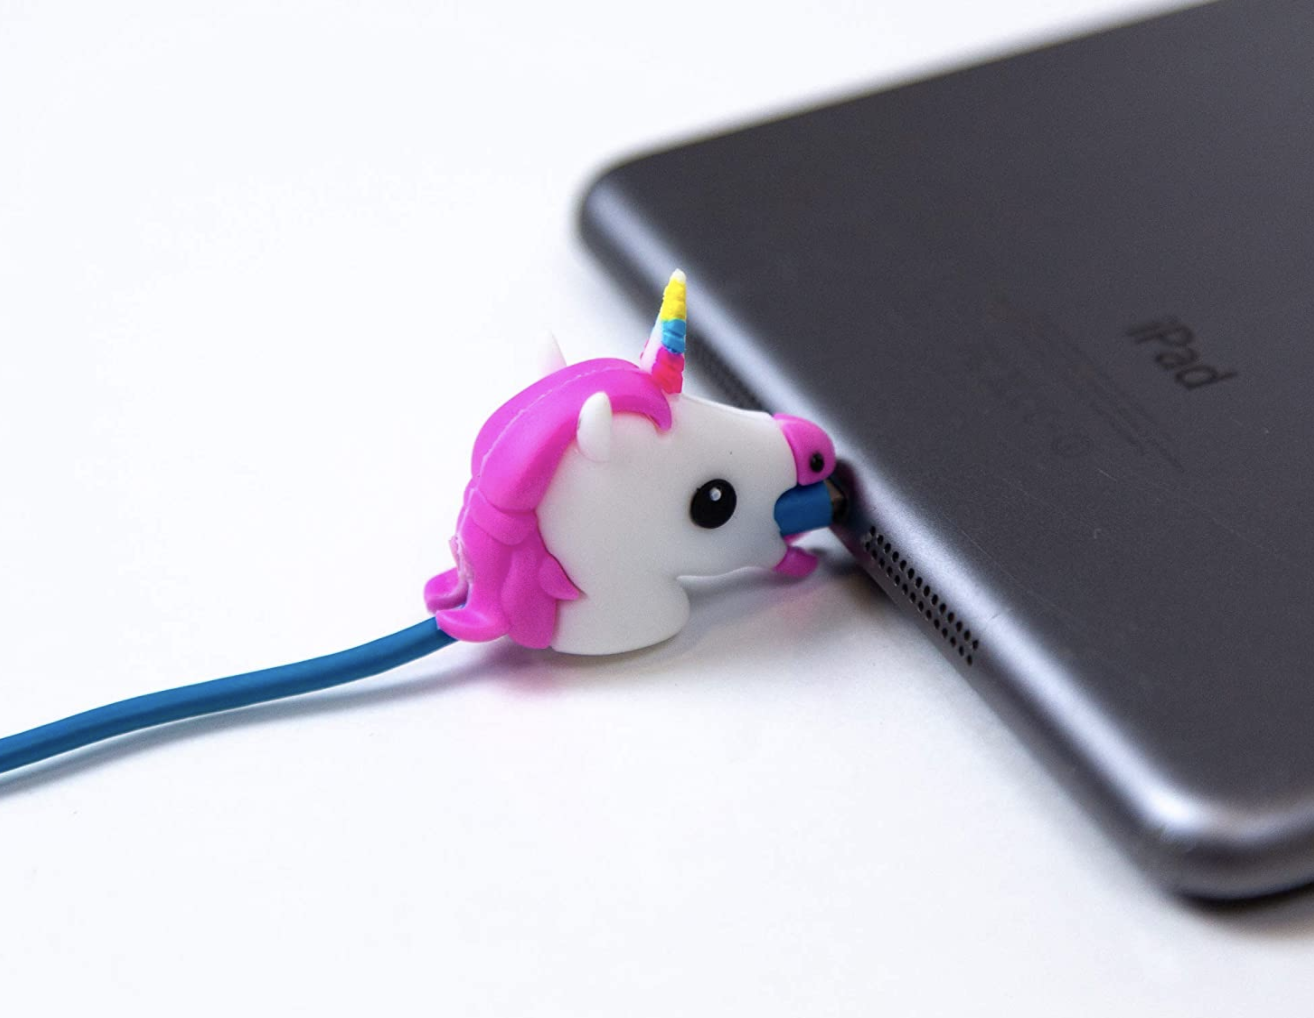 A unicorn cable bite plugged into the side of a laptop